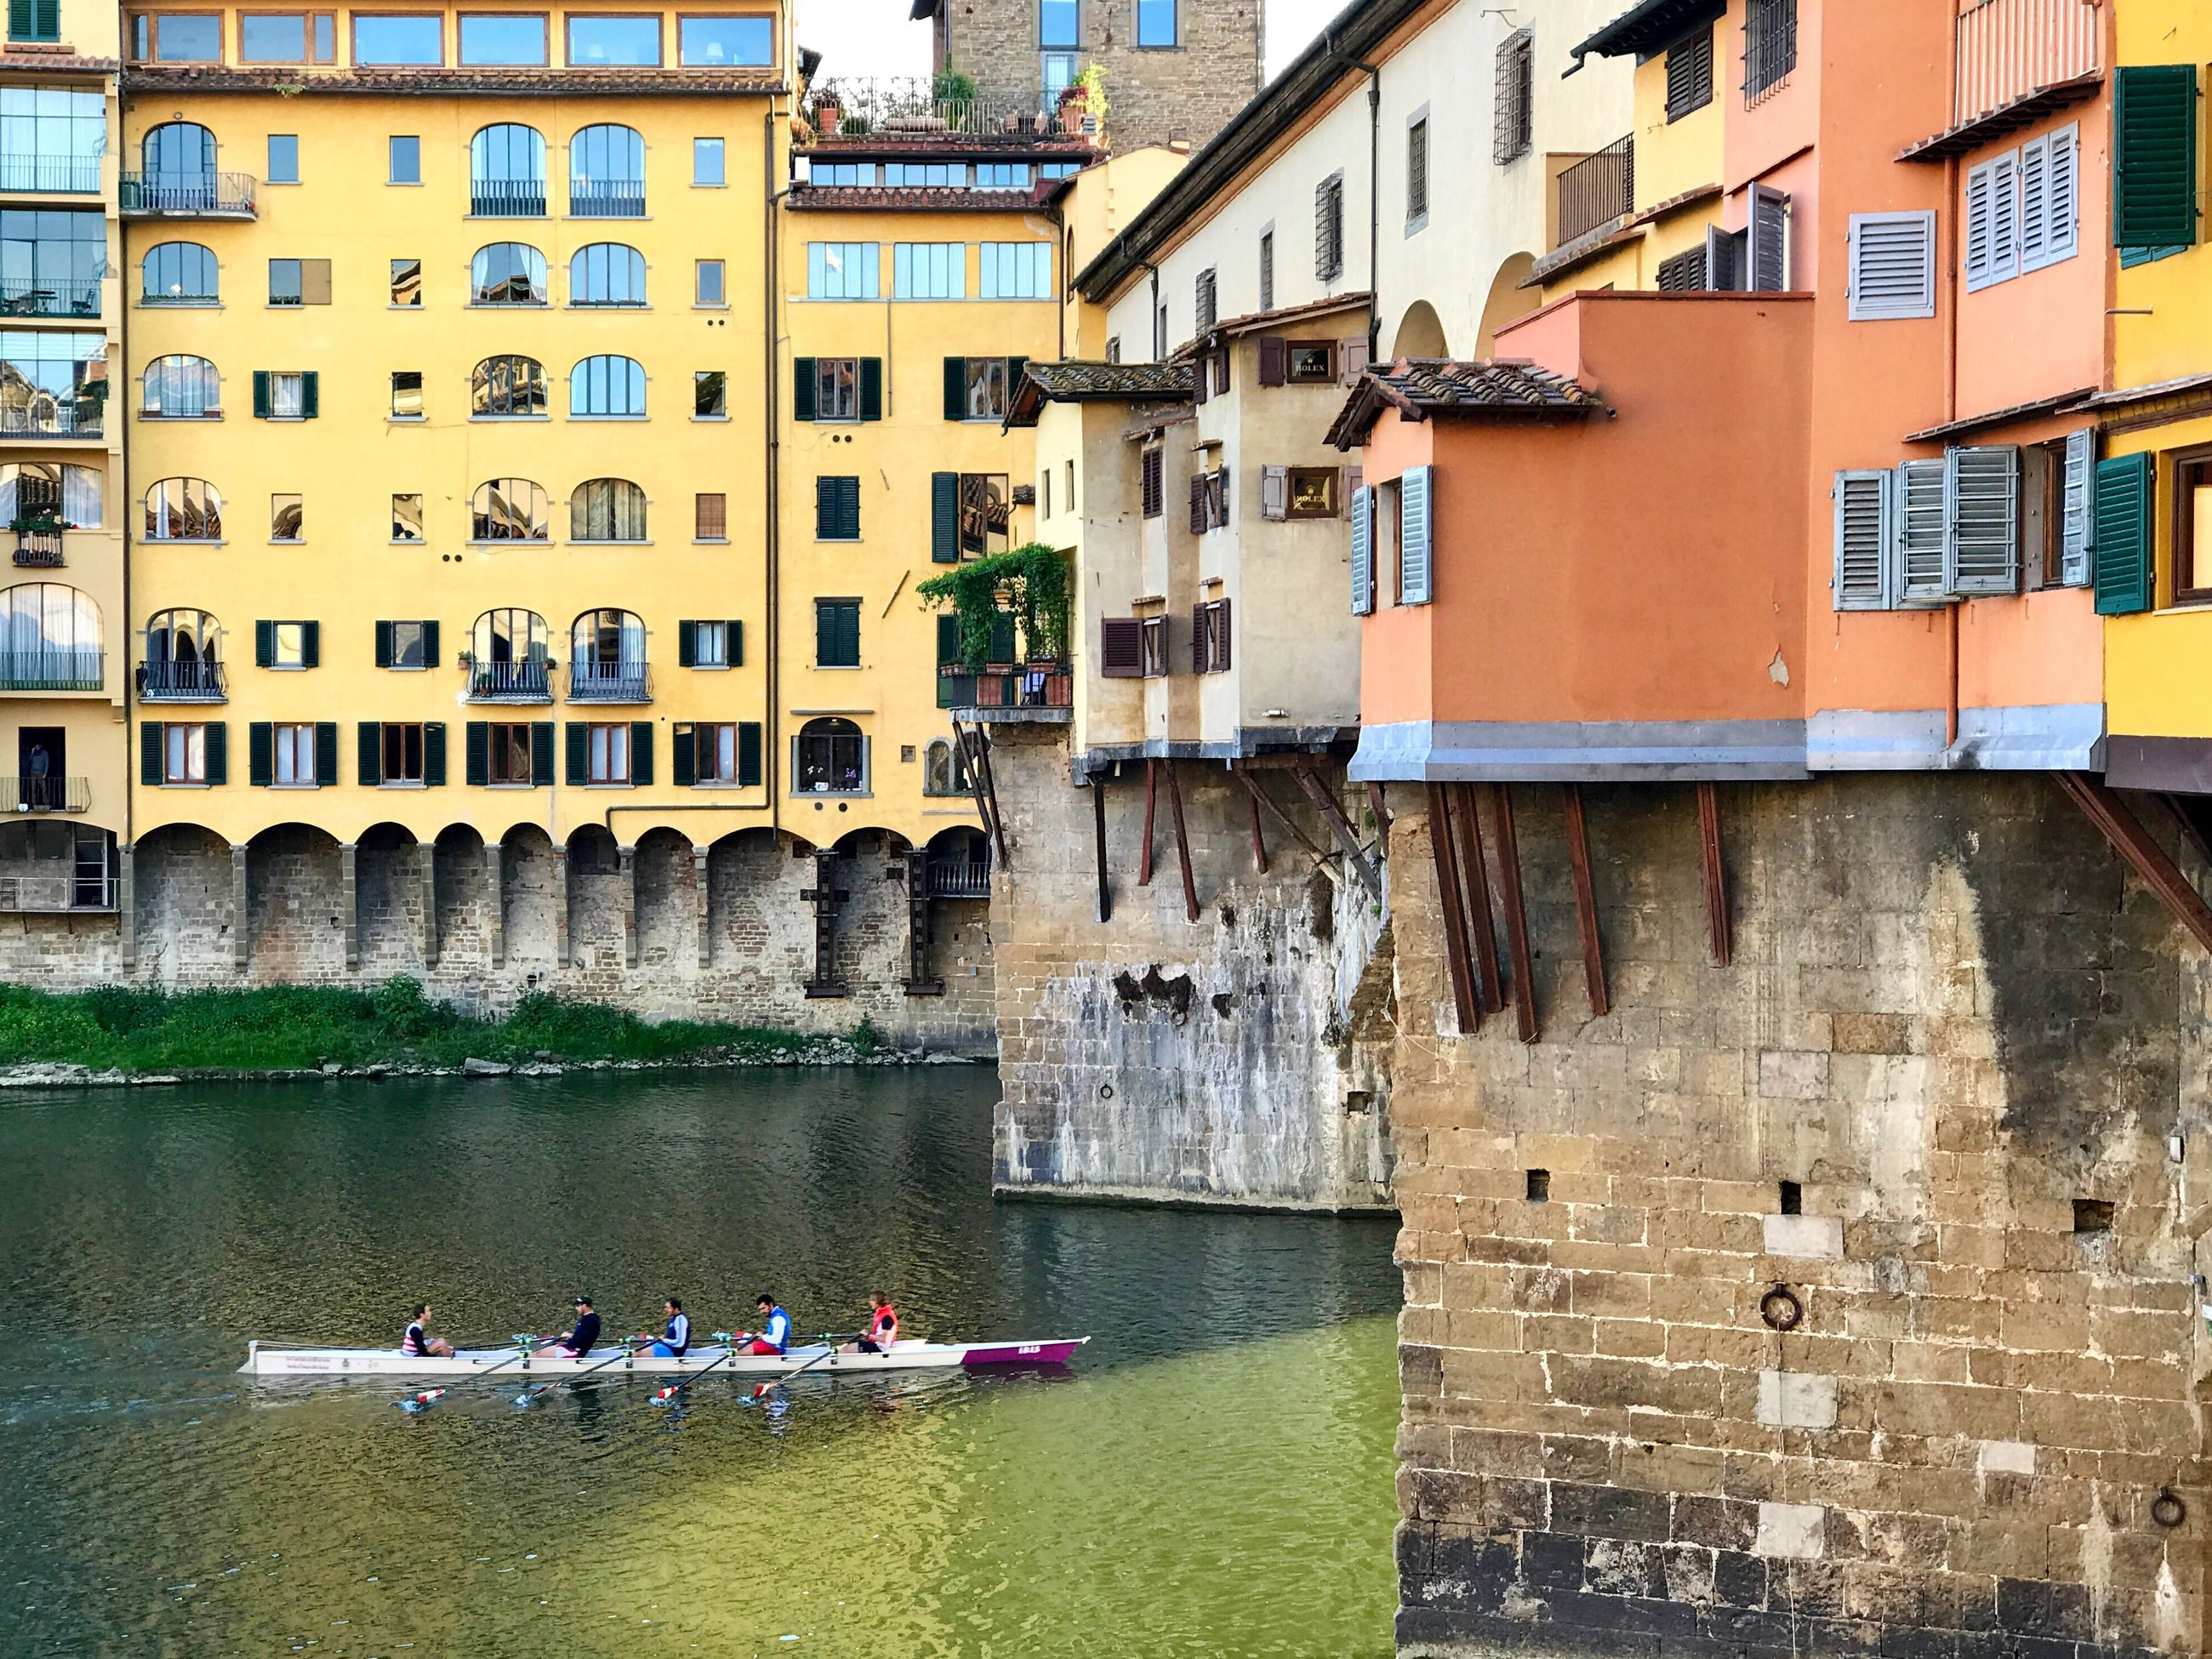 architecture, building exterior, built structure, water, real people, outdoors, day, window, men, waterfront, transportation, large group of people, leisure activity, rowing, oar, nautical vessel, nature, city, people